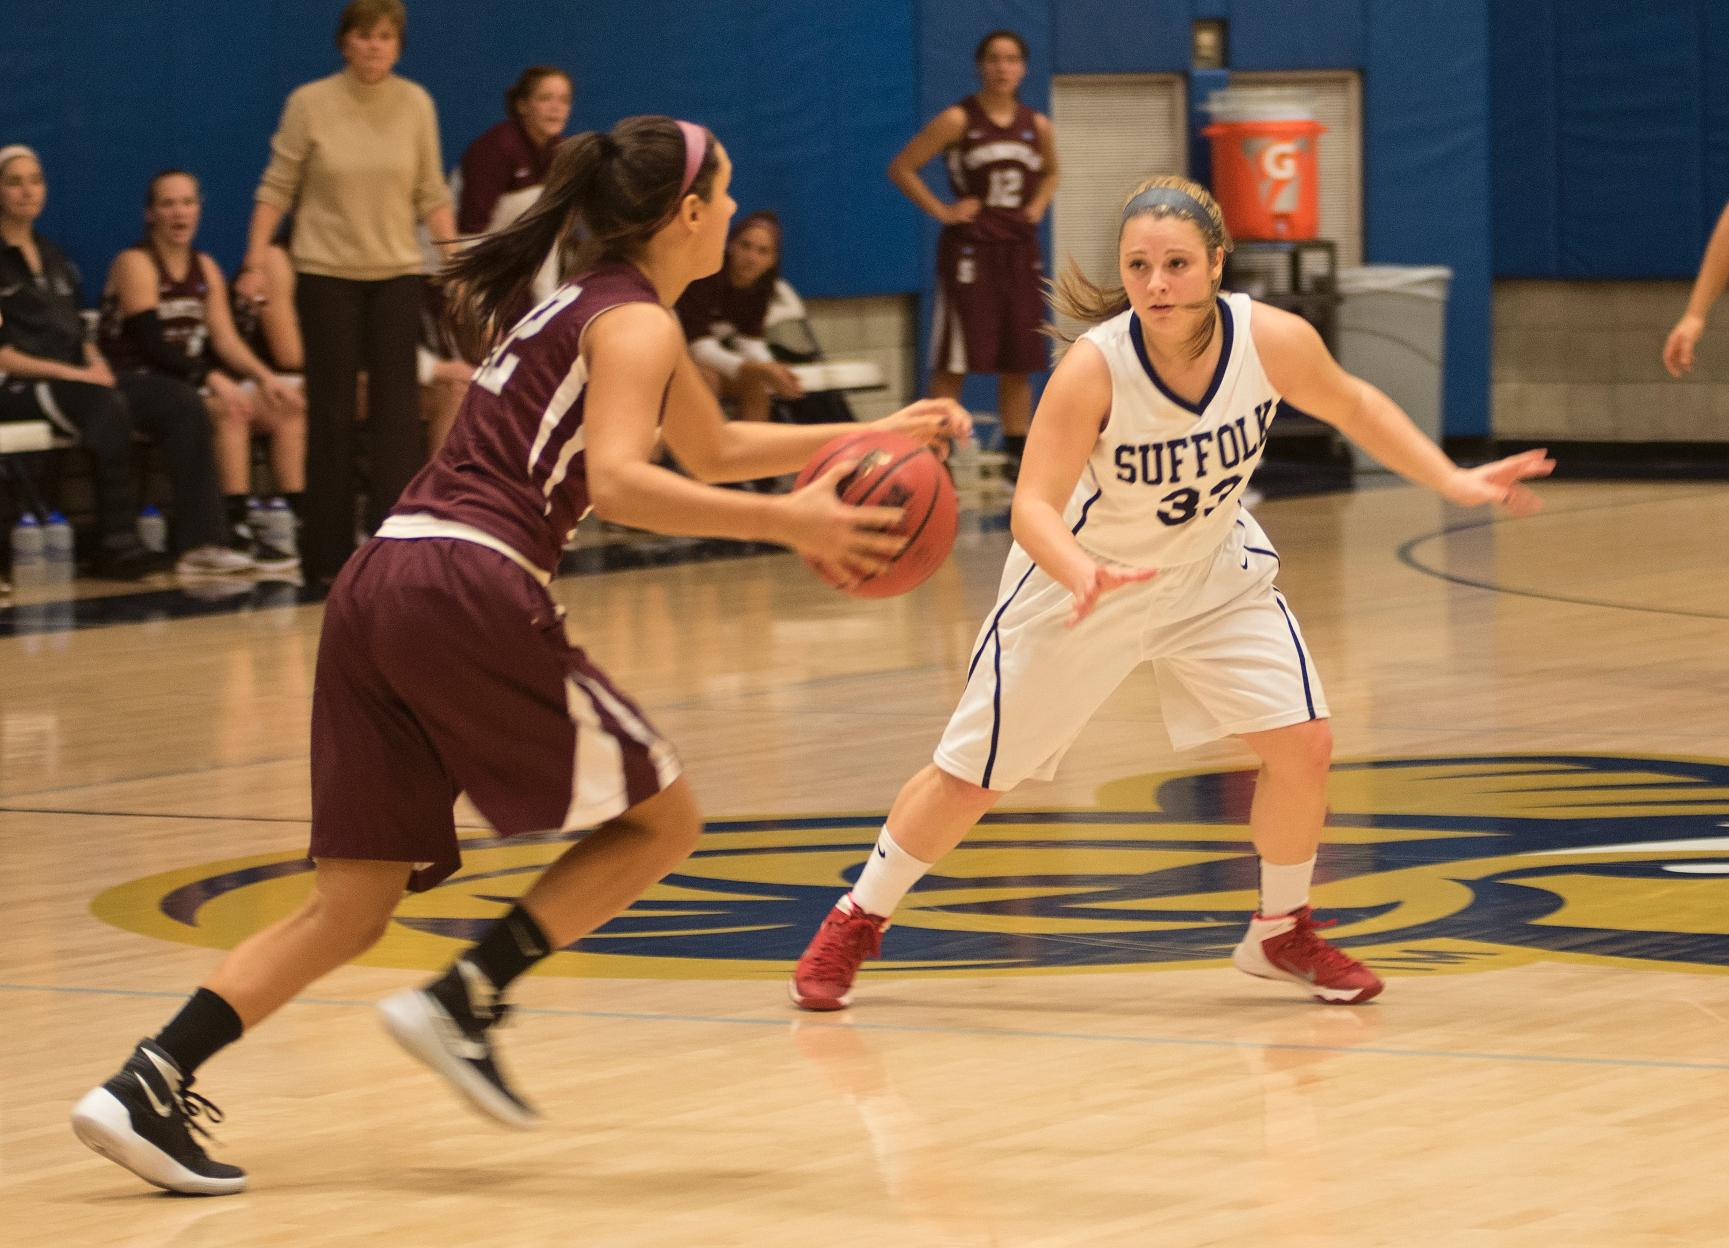 Tuesday Tilt at Clarke Closes 2016 for Women's Basketball